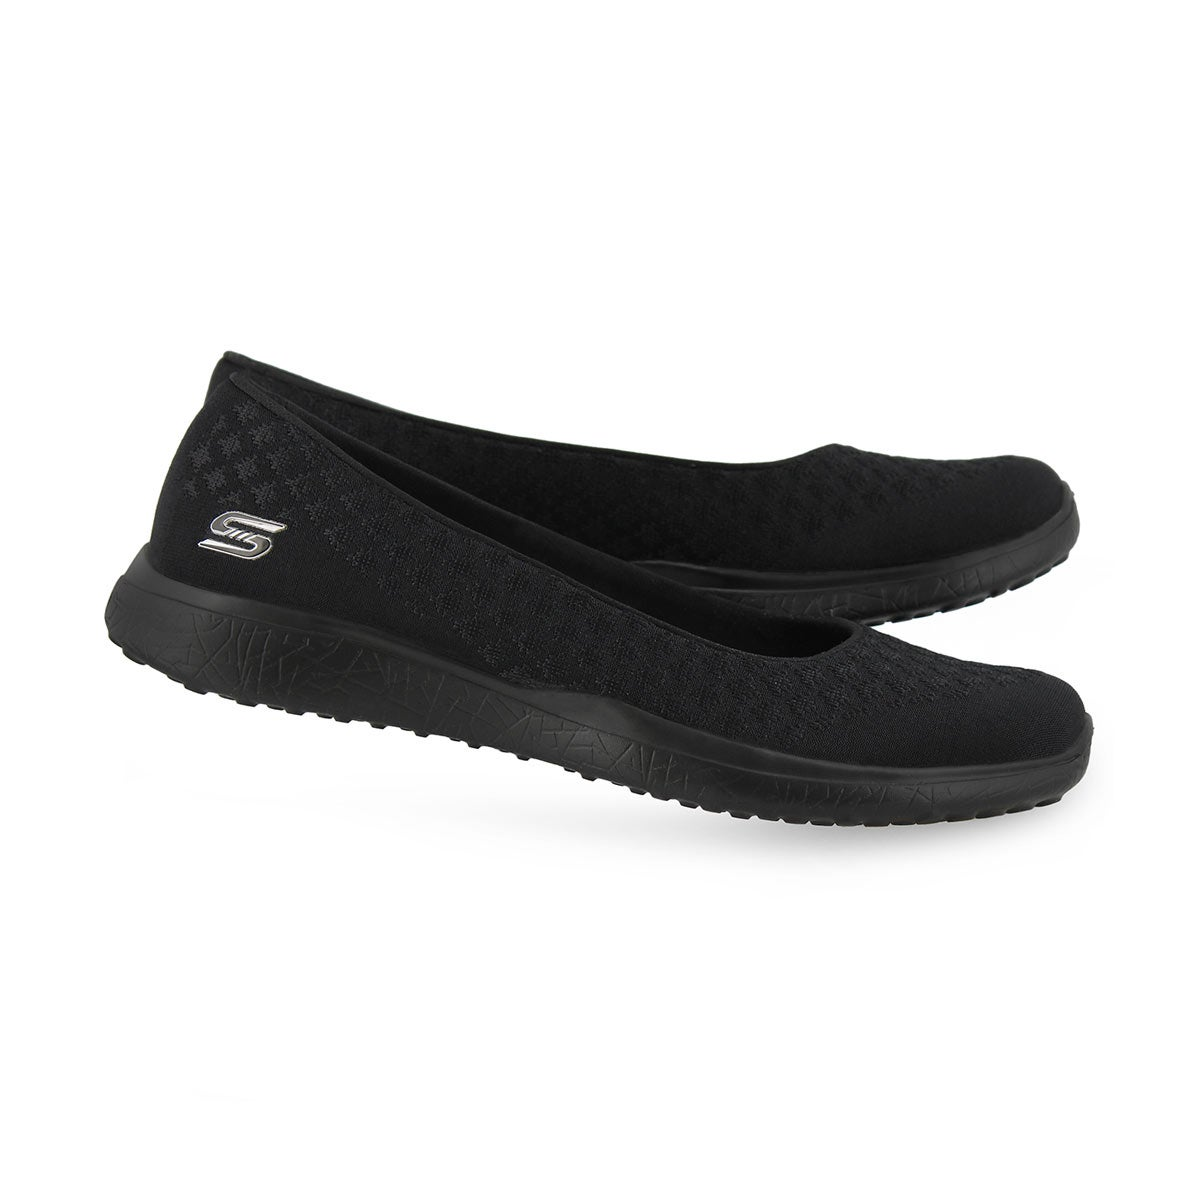 Lds Microburst One-Up blk flat shoe